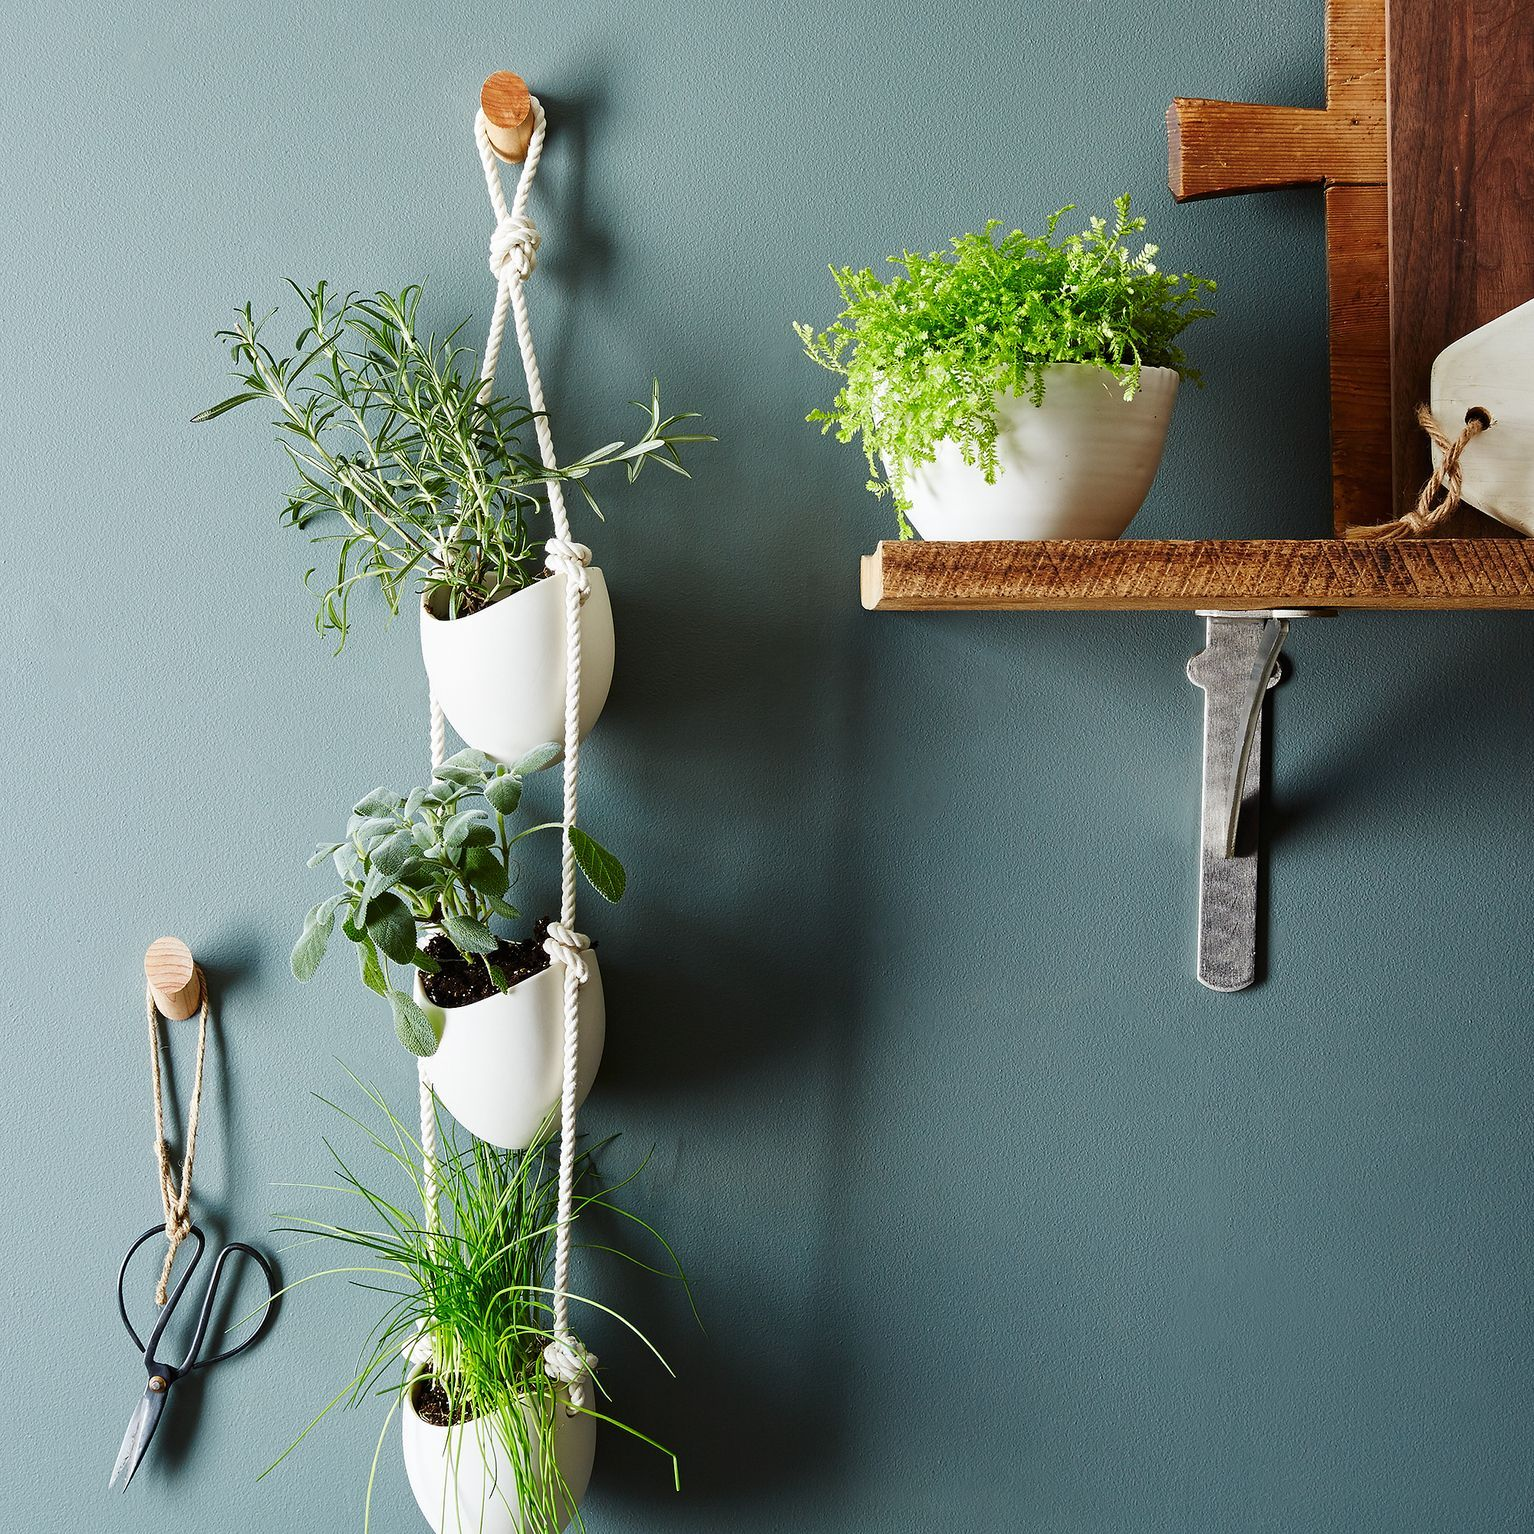 3 Tier Ceramic Hanging Planter